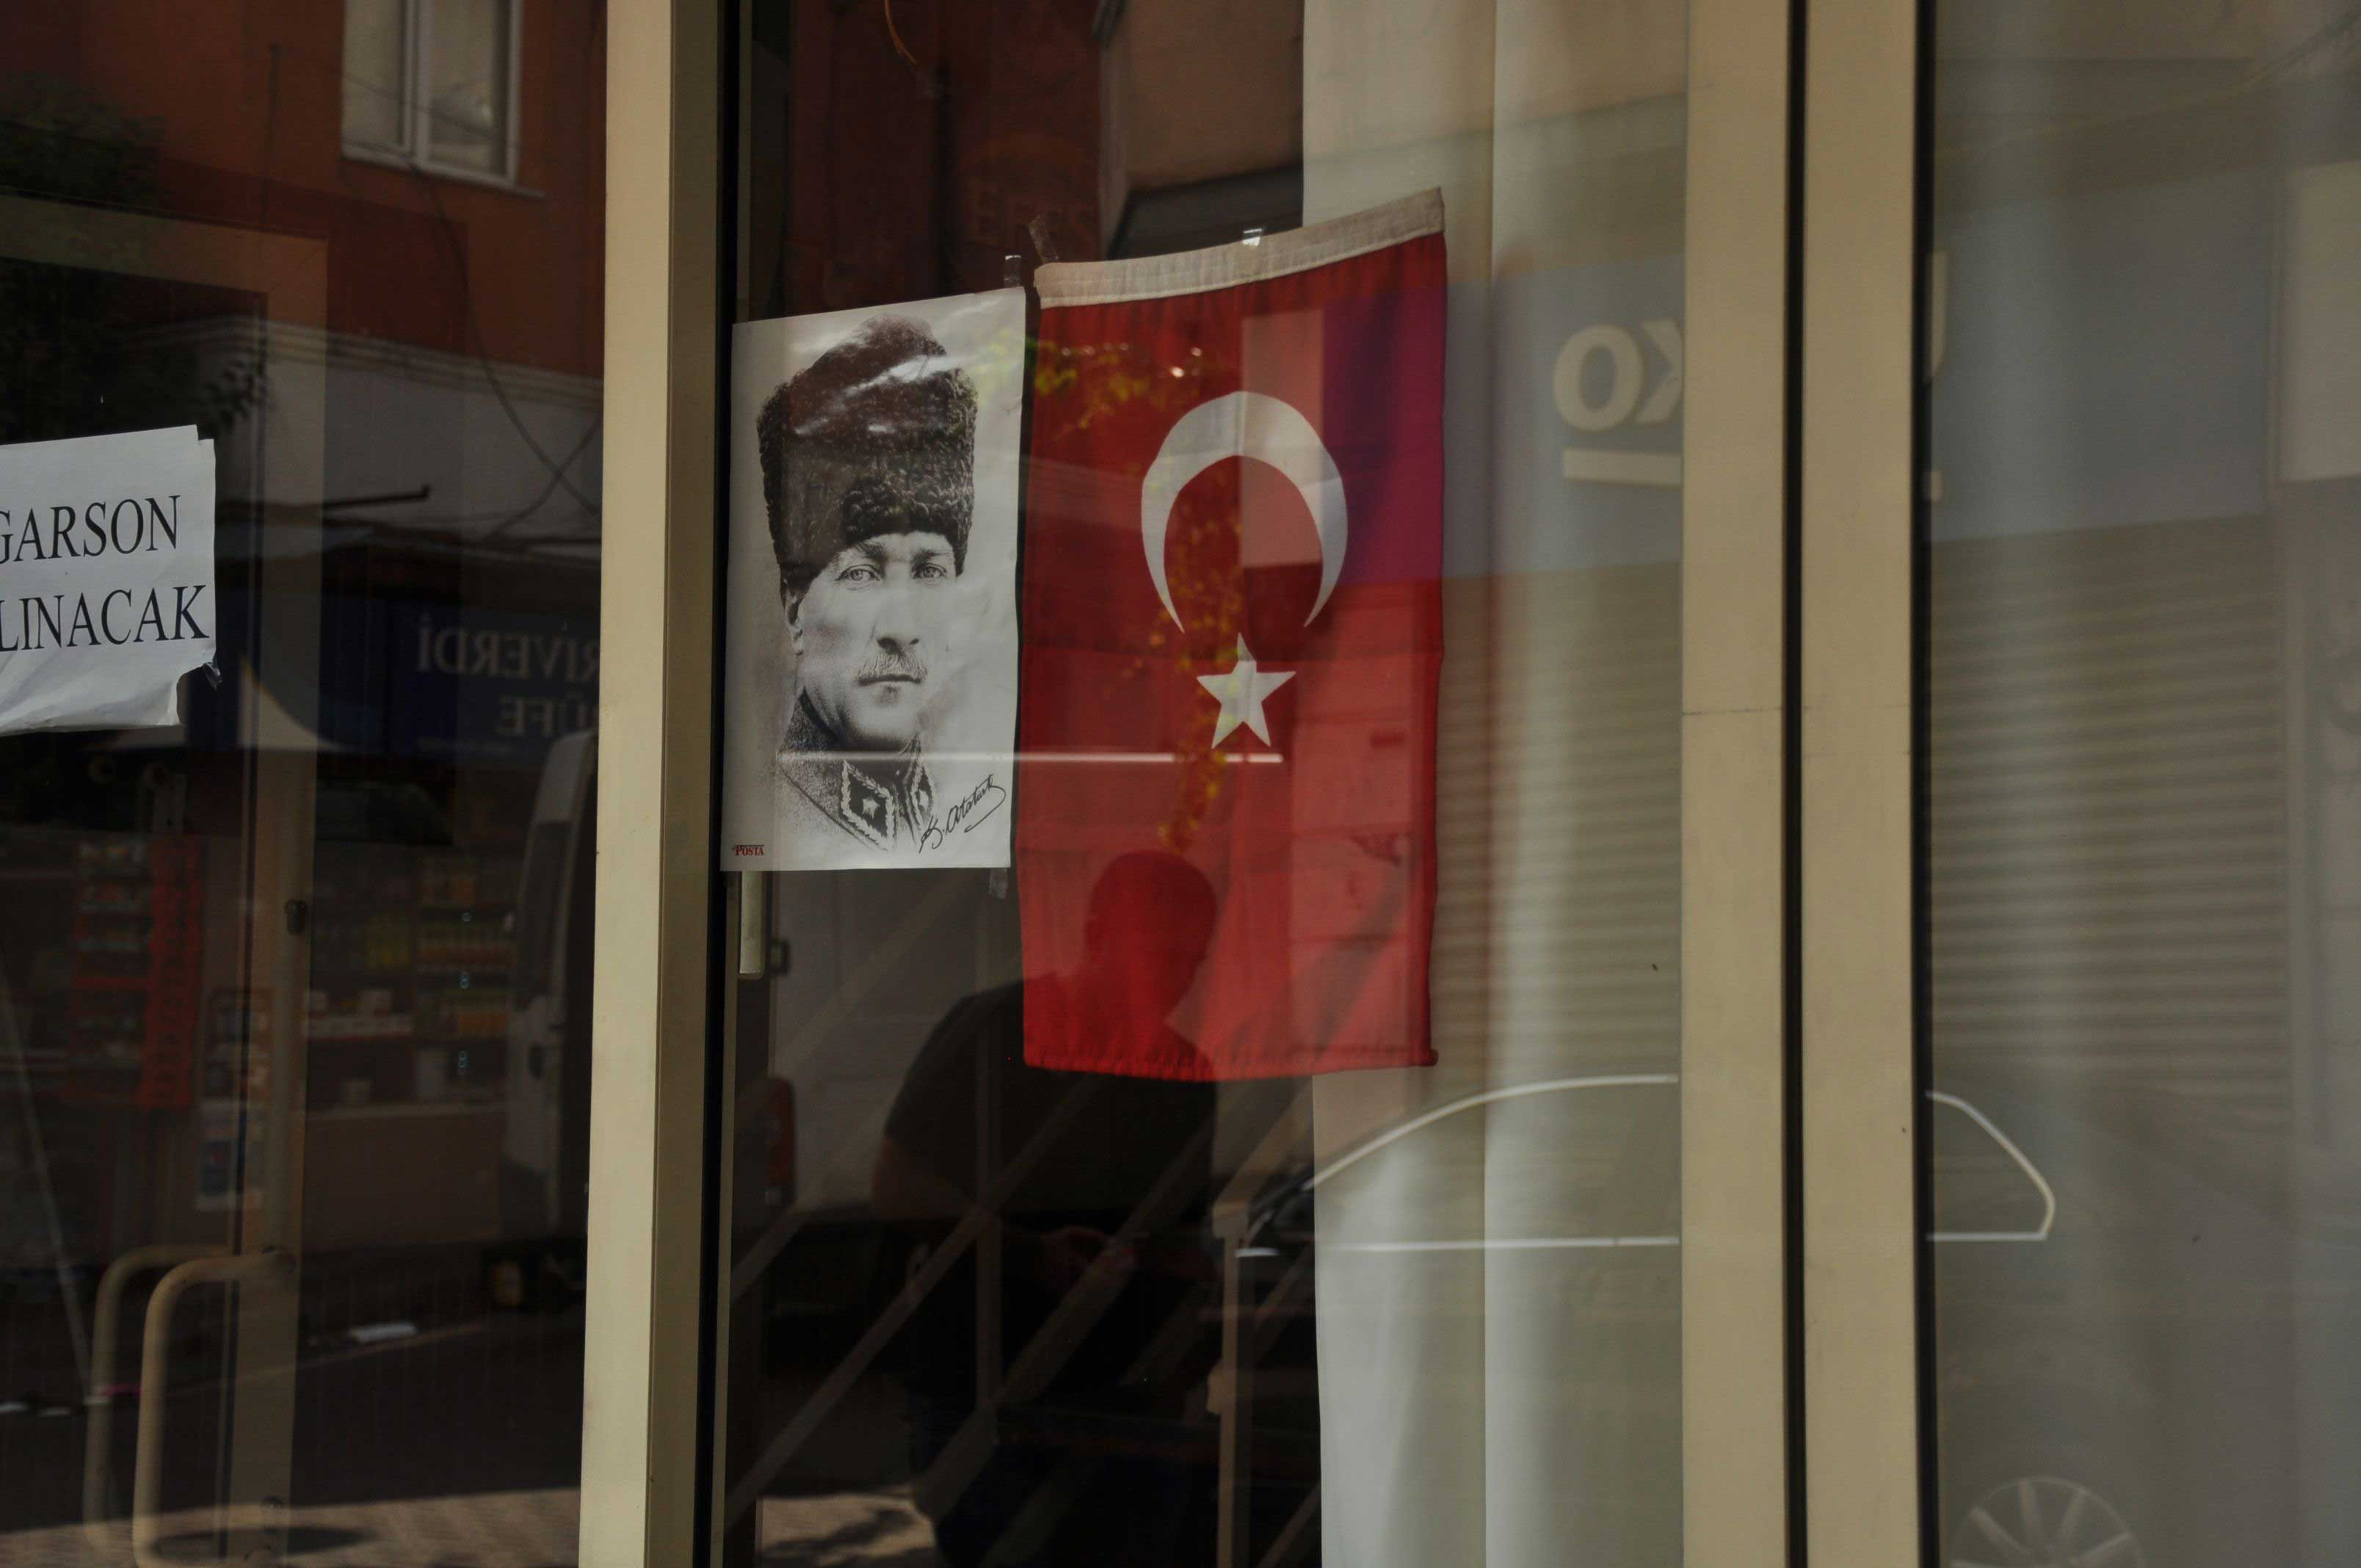 … about Turkey and Turkish people